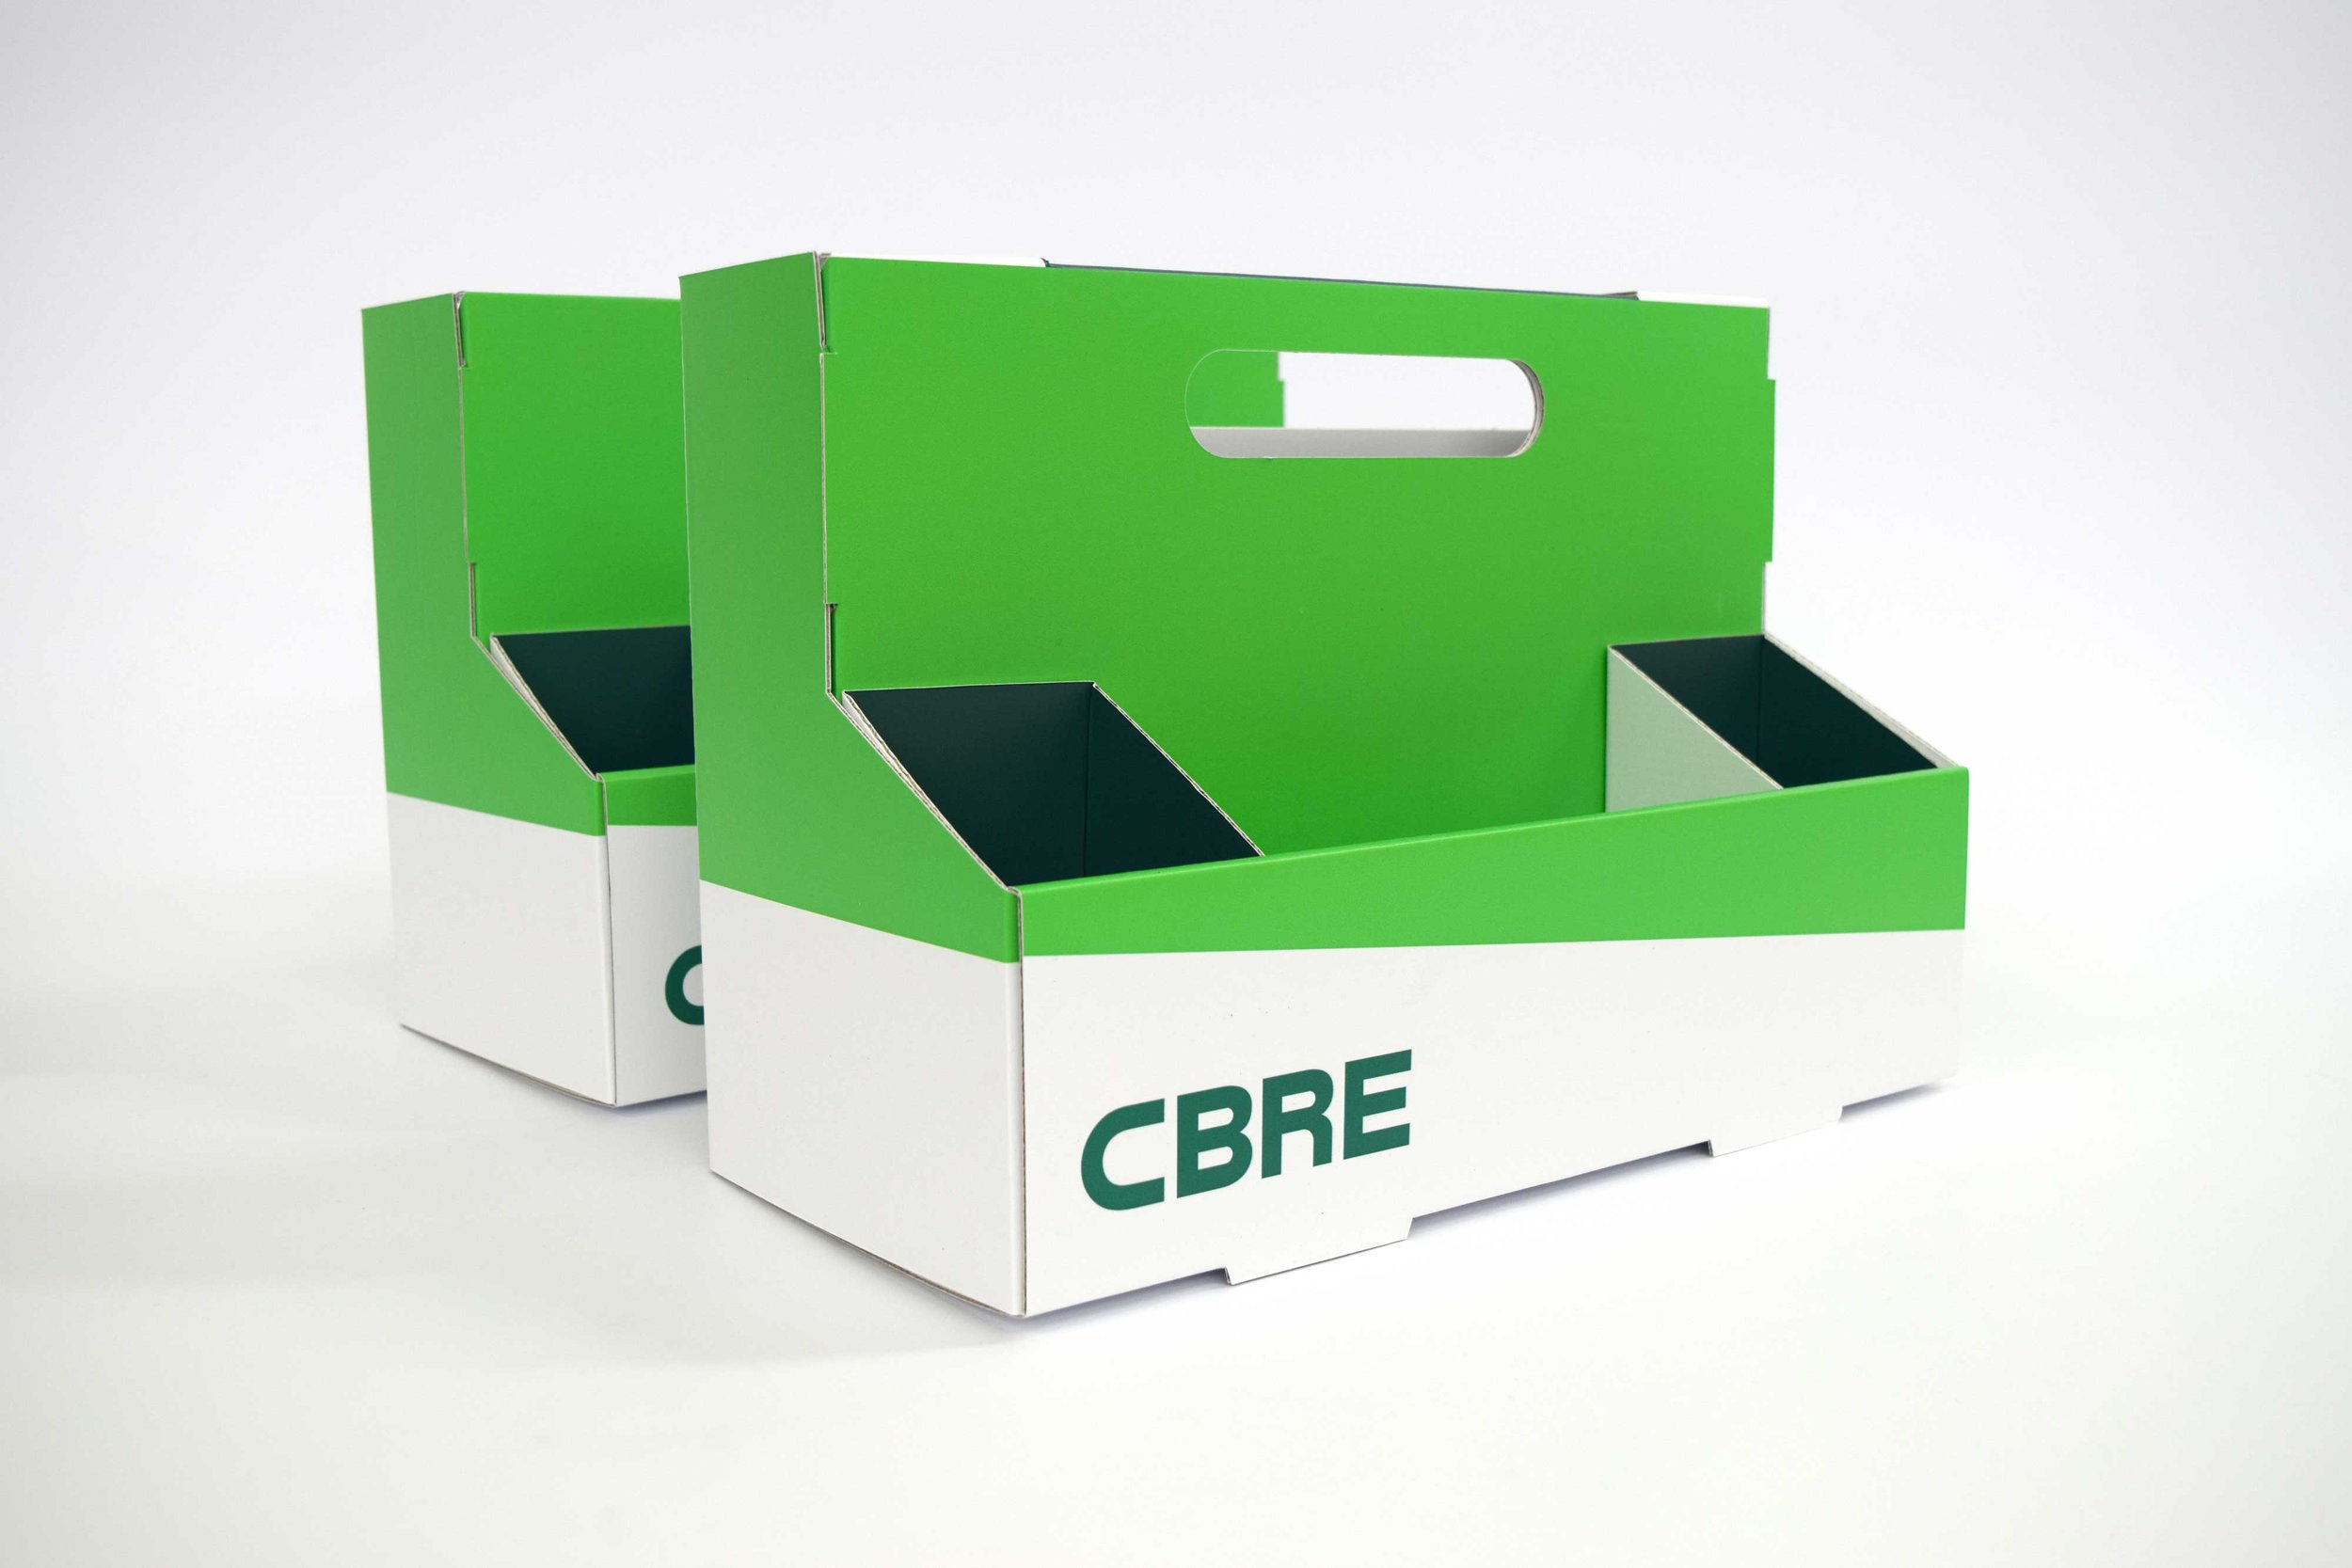 CBRE-Lockerbox-Design.jpg